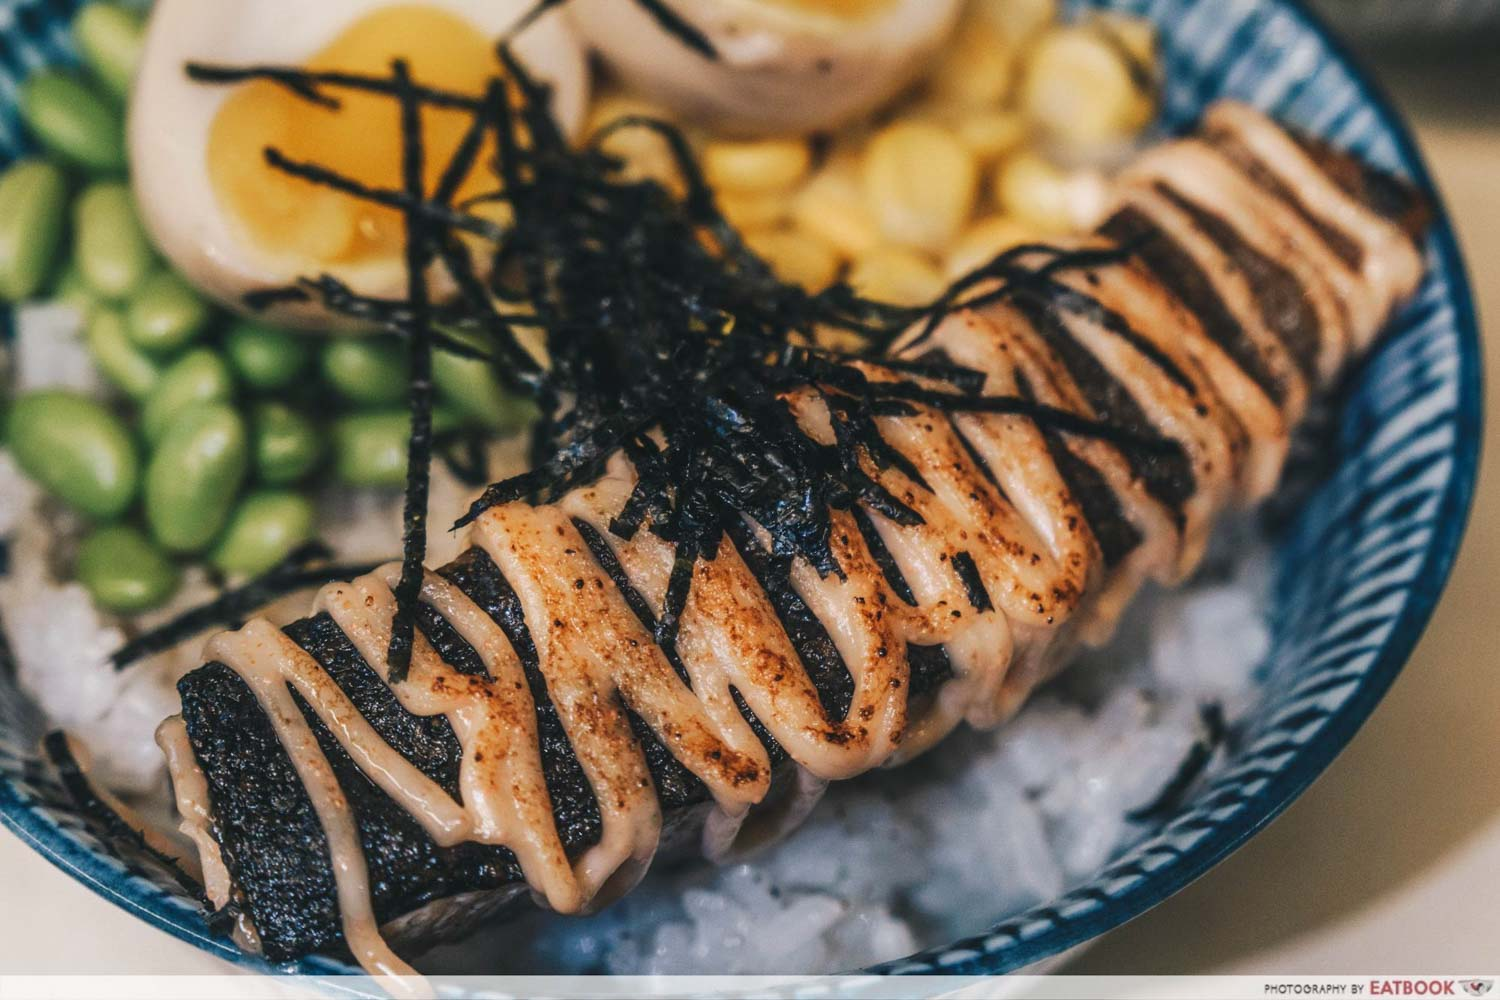 TORCHED meat platter - mentaiko salmon